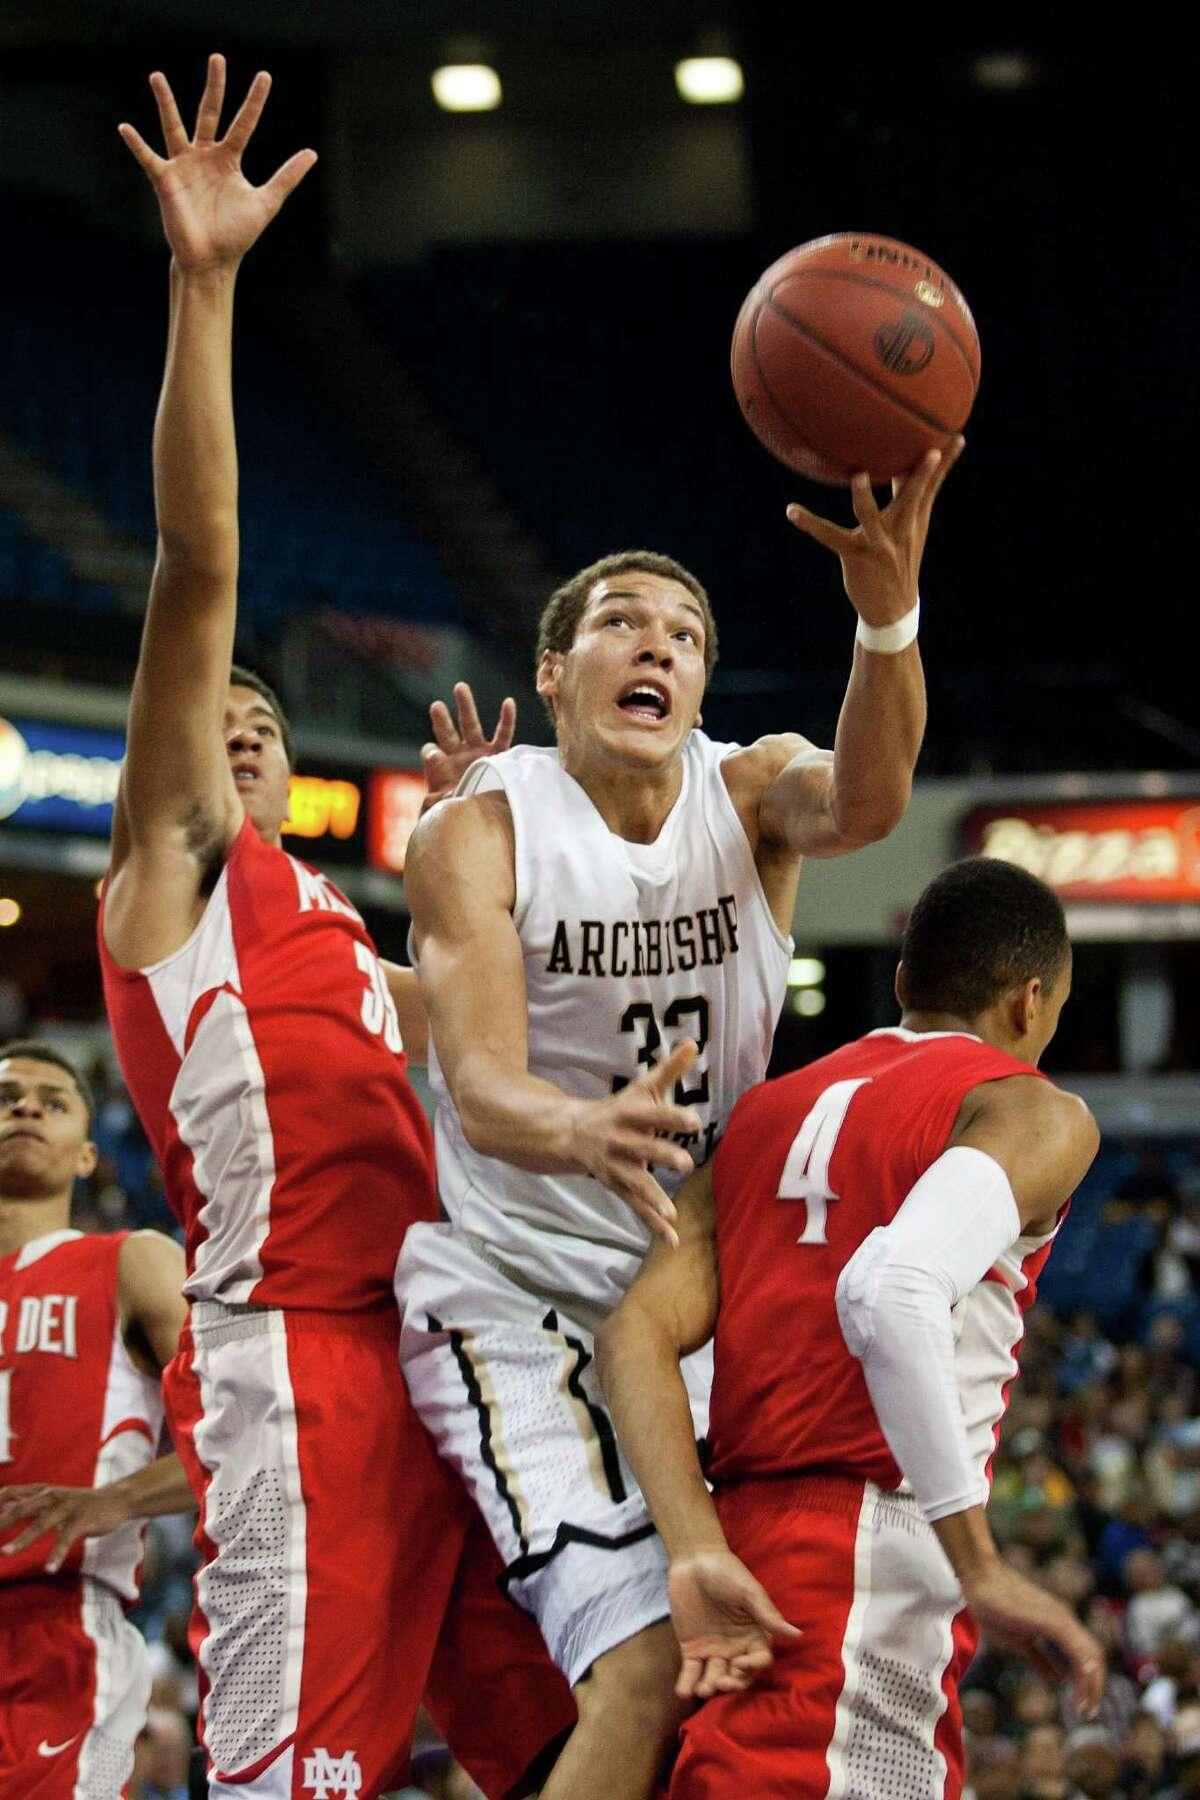 Archbishop Mitty's Aaron Gordon, center, goes to the basket against Mater Dei at the CIF State Basketball Championships March 23, 2013 in Sacramento, California.